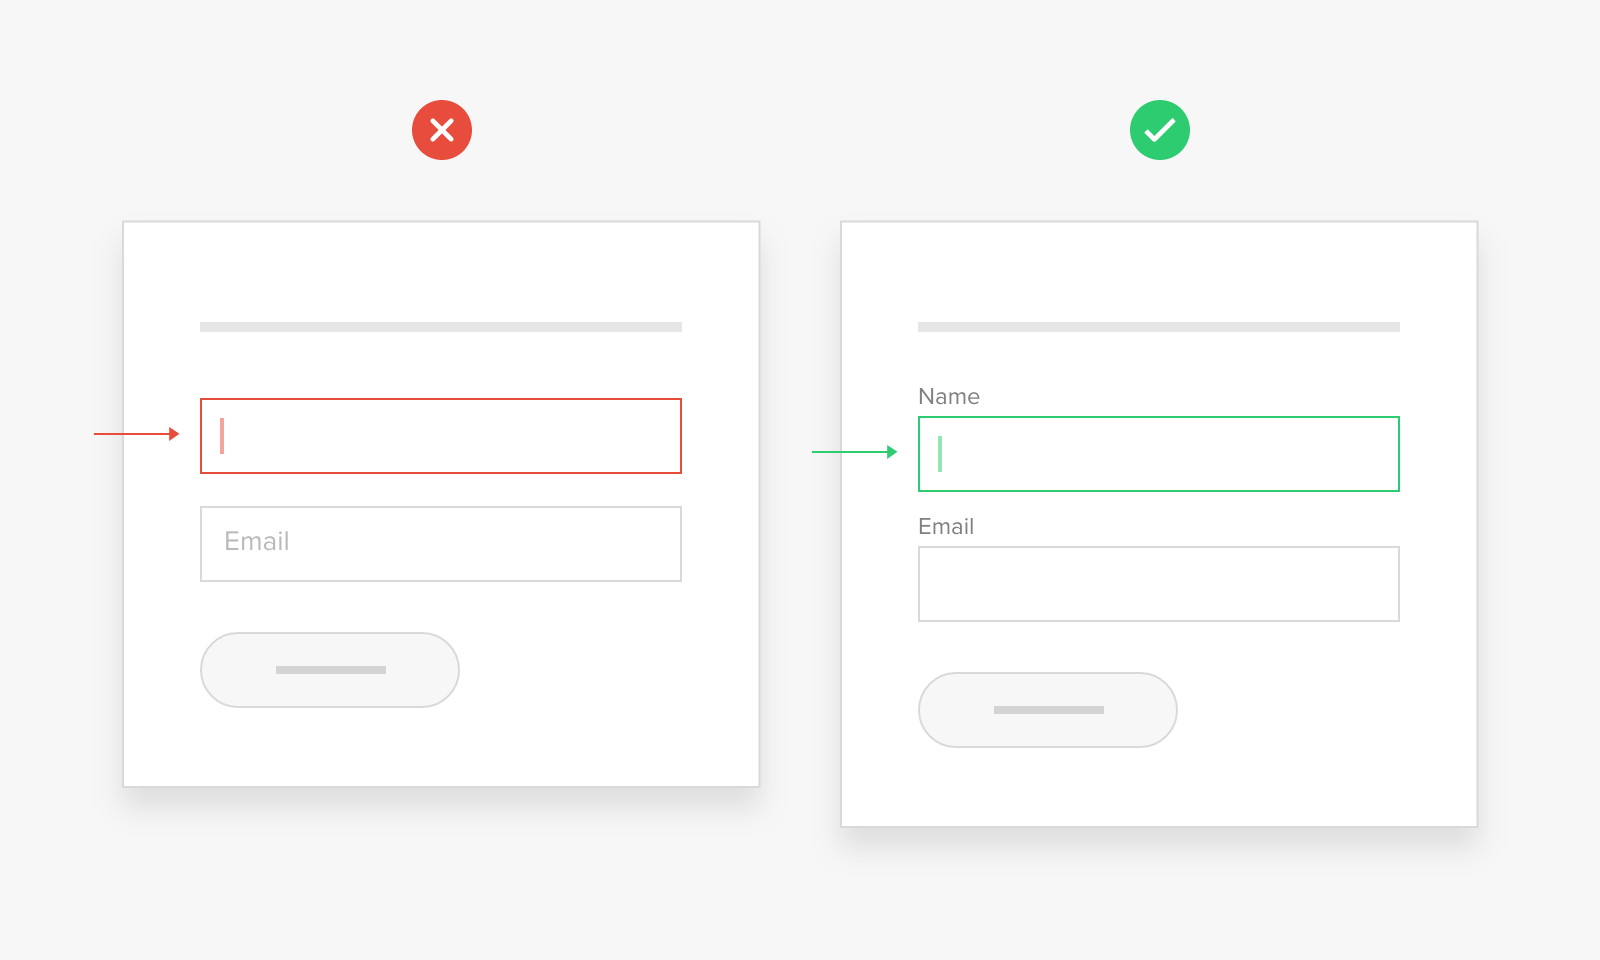 Form best practices: Avoid placeholder labels